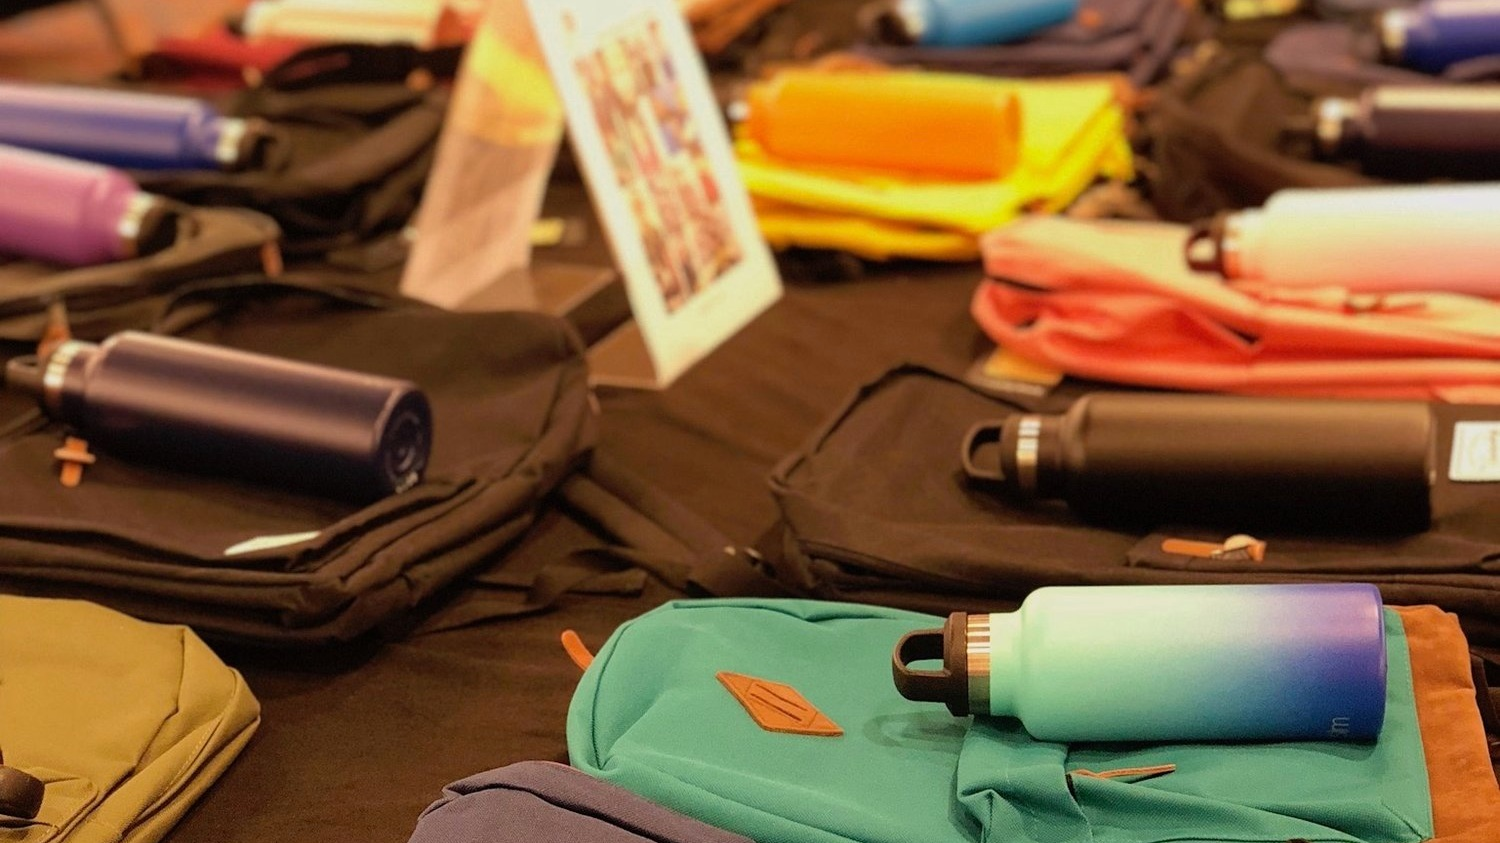 Education-Childrens-Bags-to-be-Packed-Amex-Denver-18.jpg